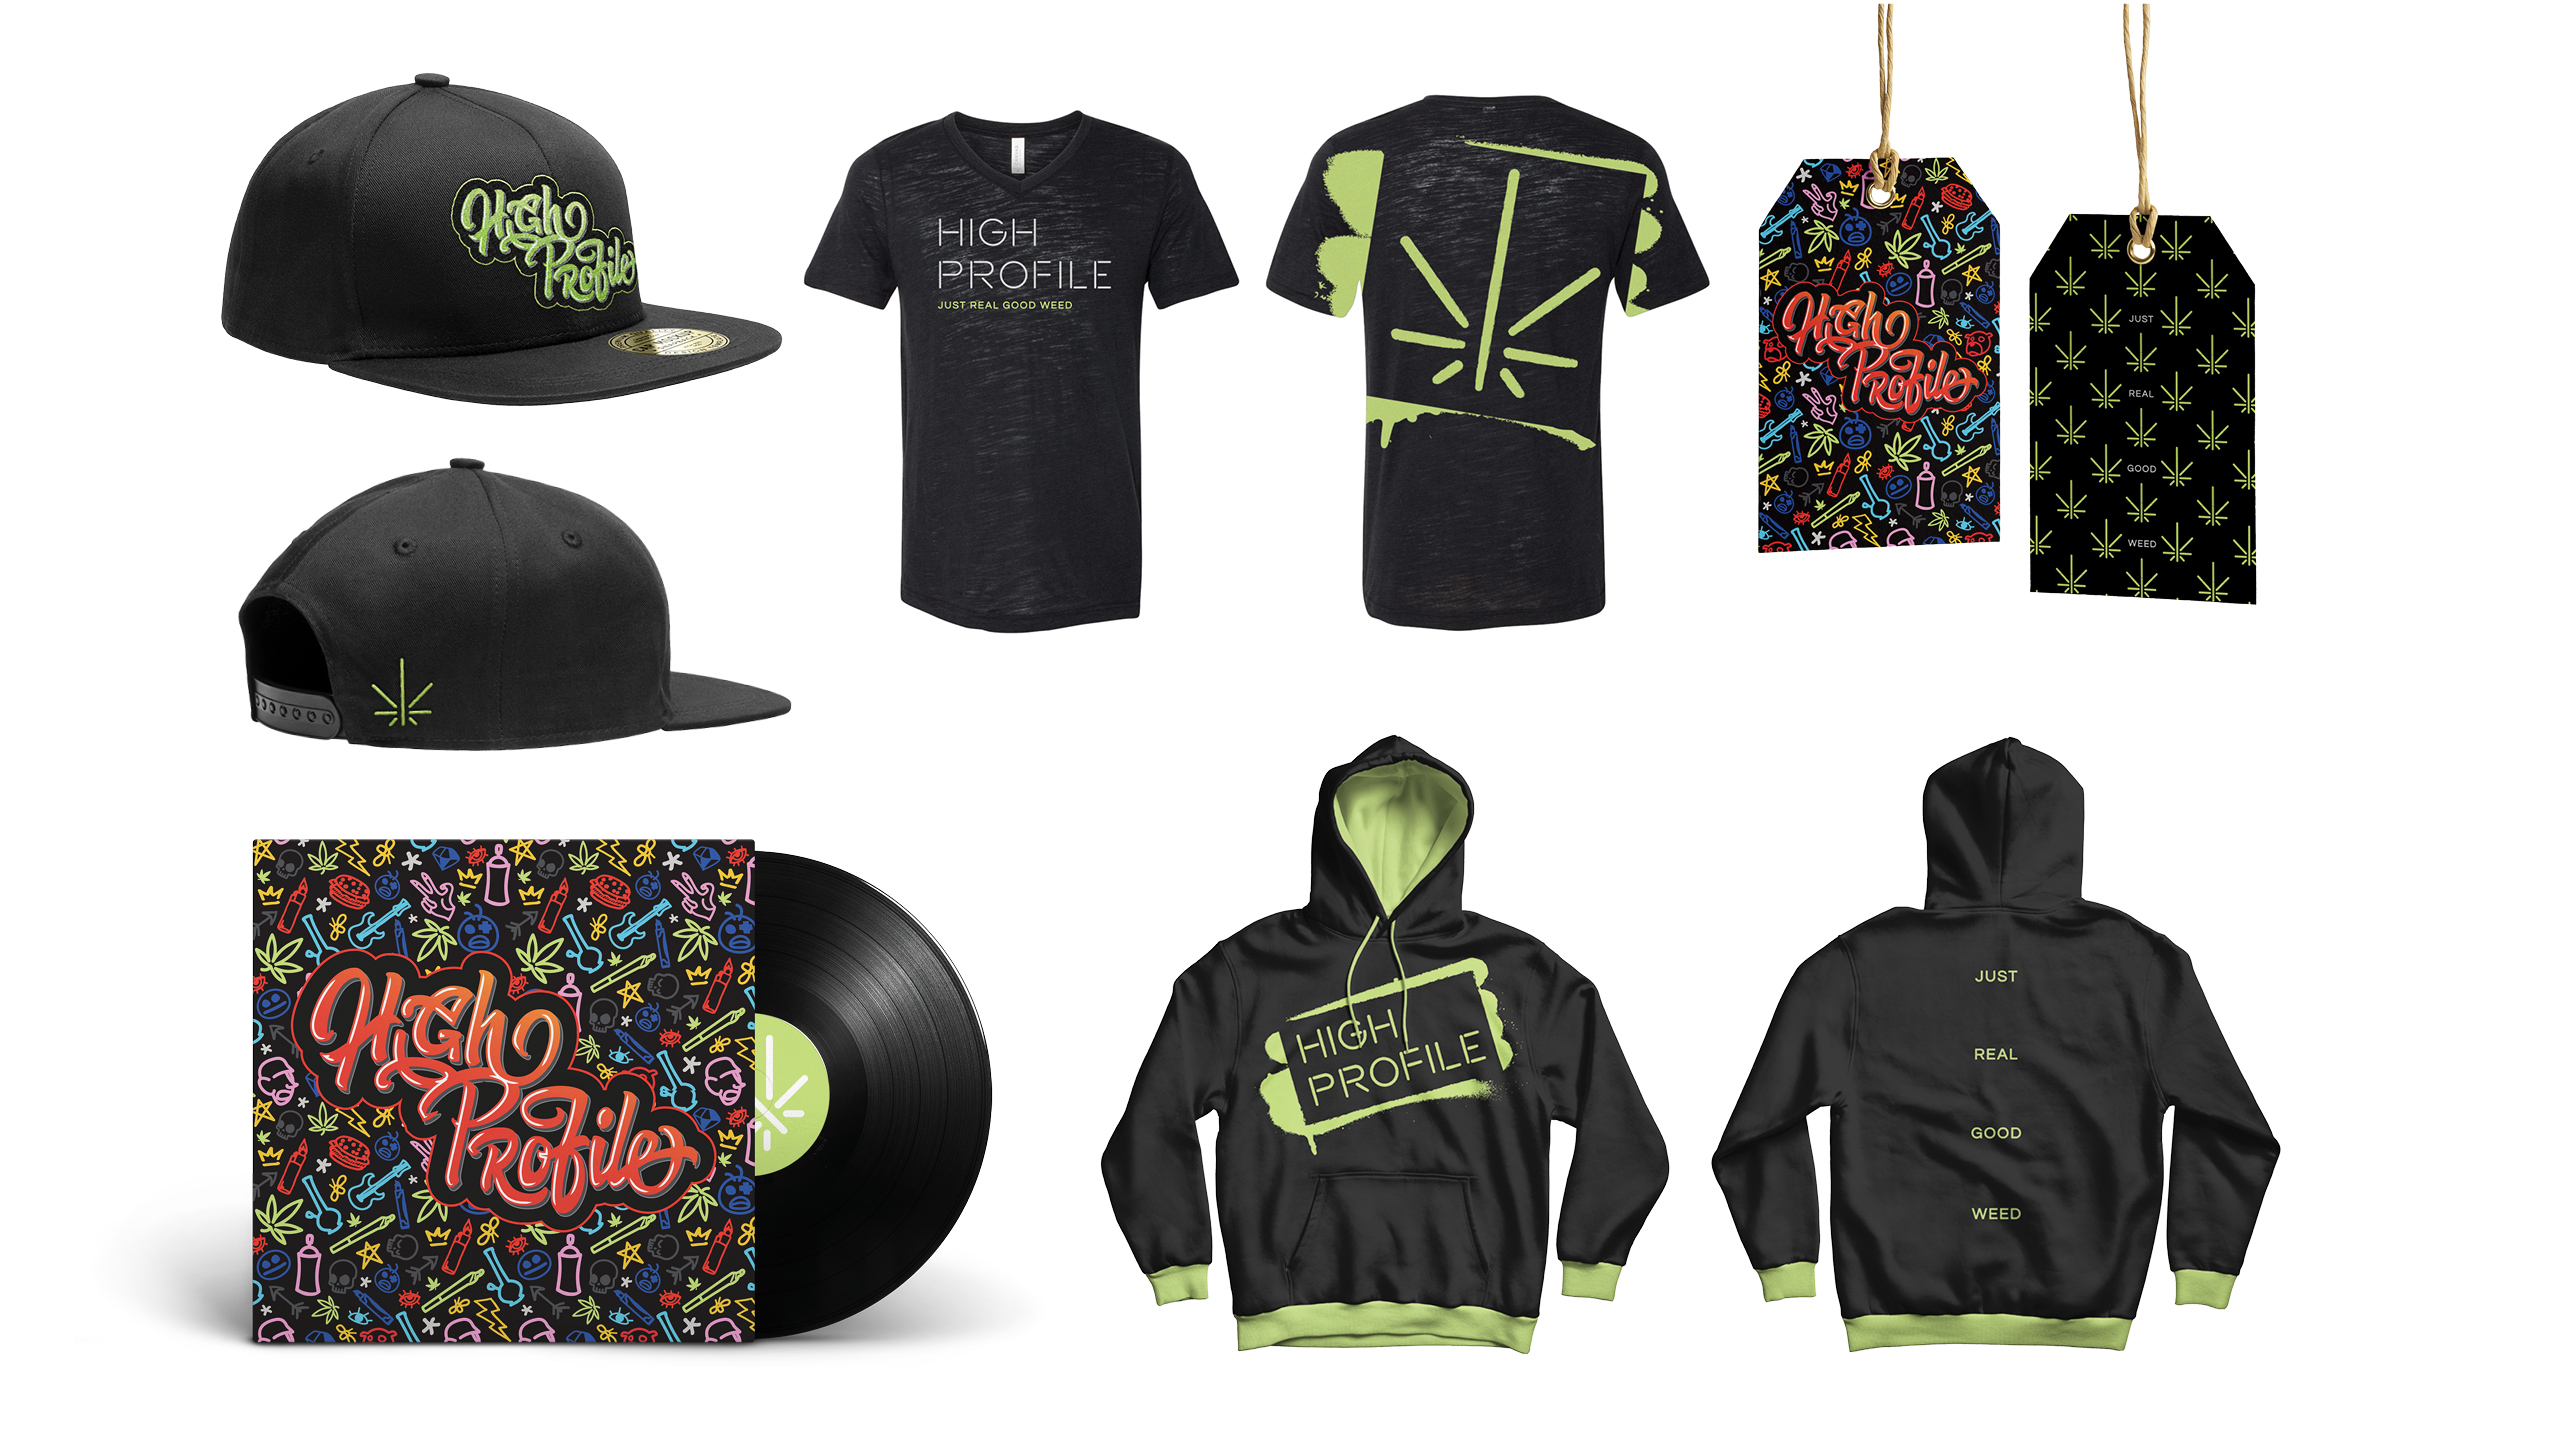 High Profile Branded Apparel by High Road Design Studio